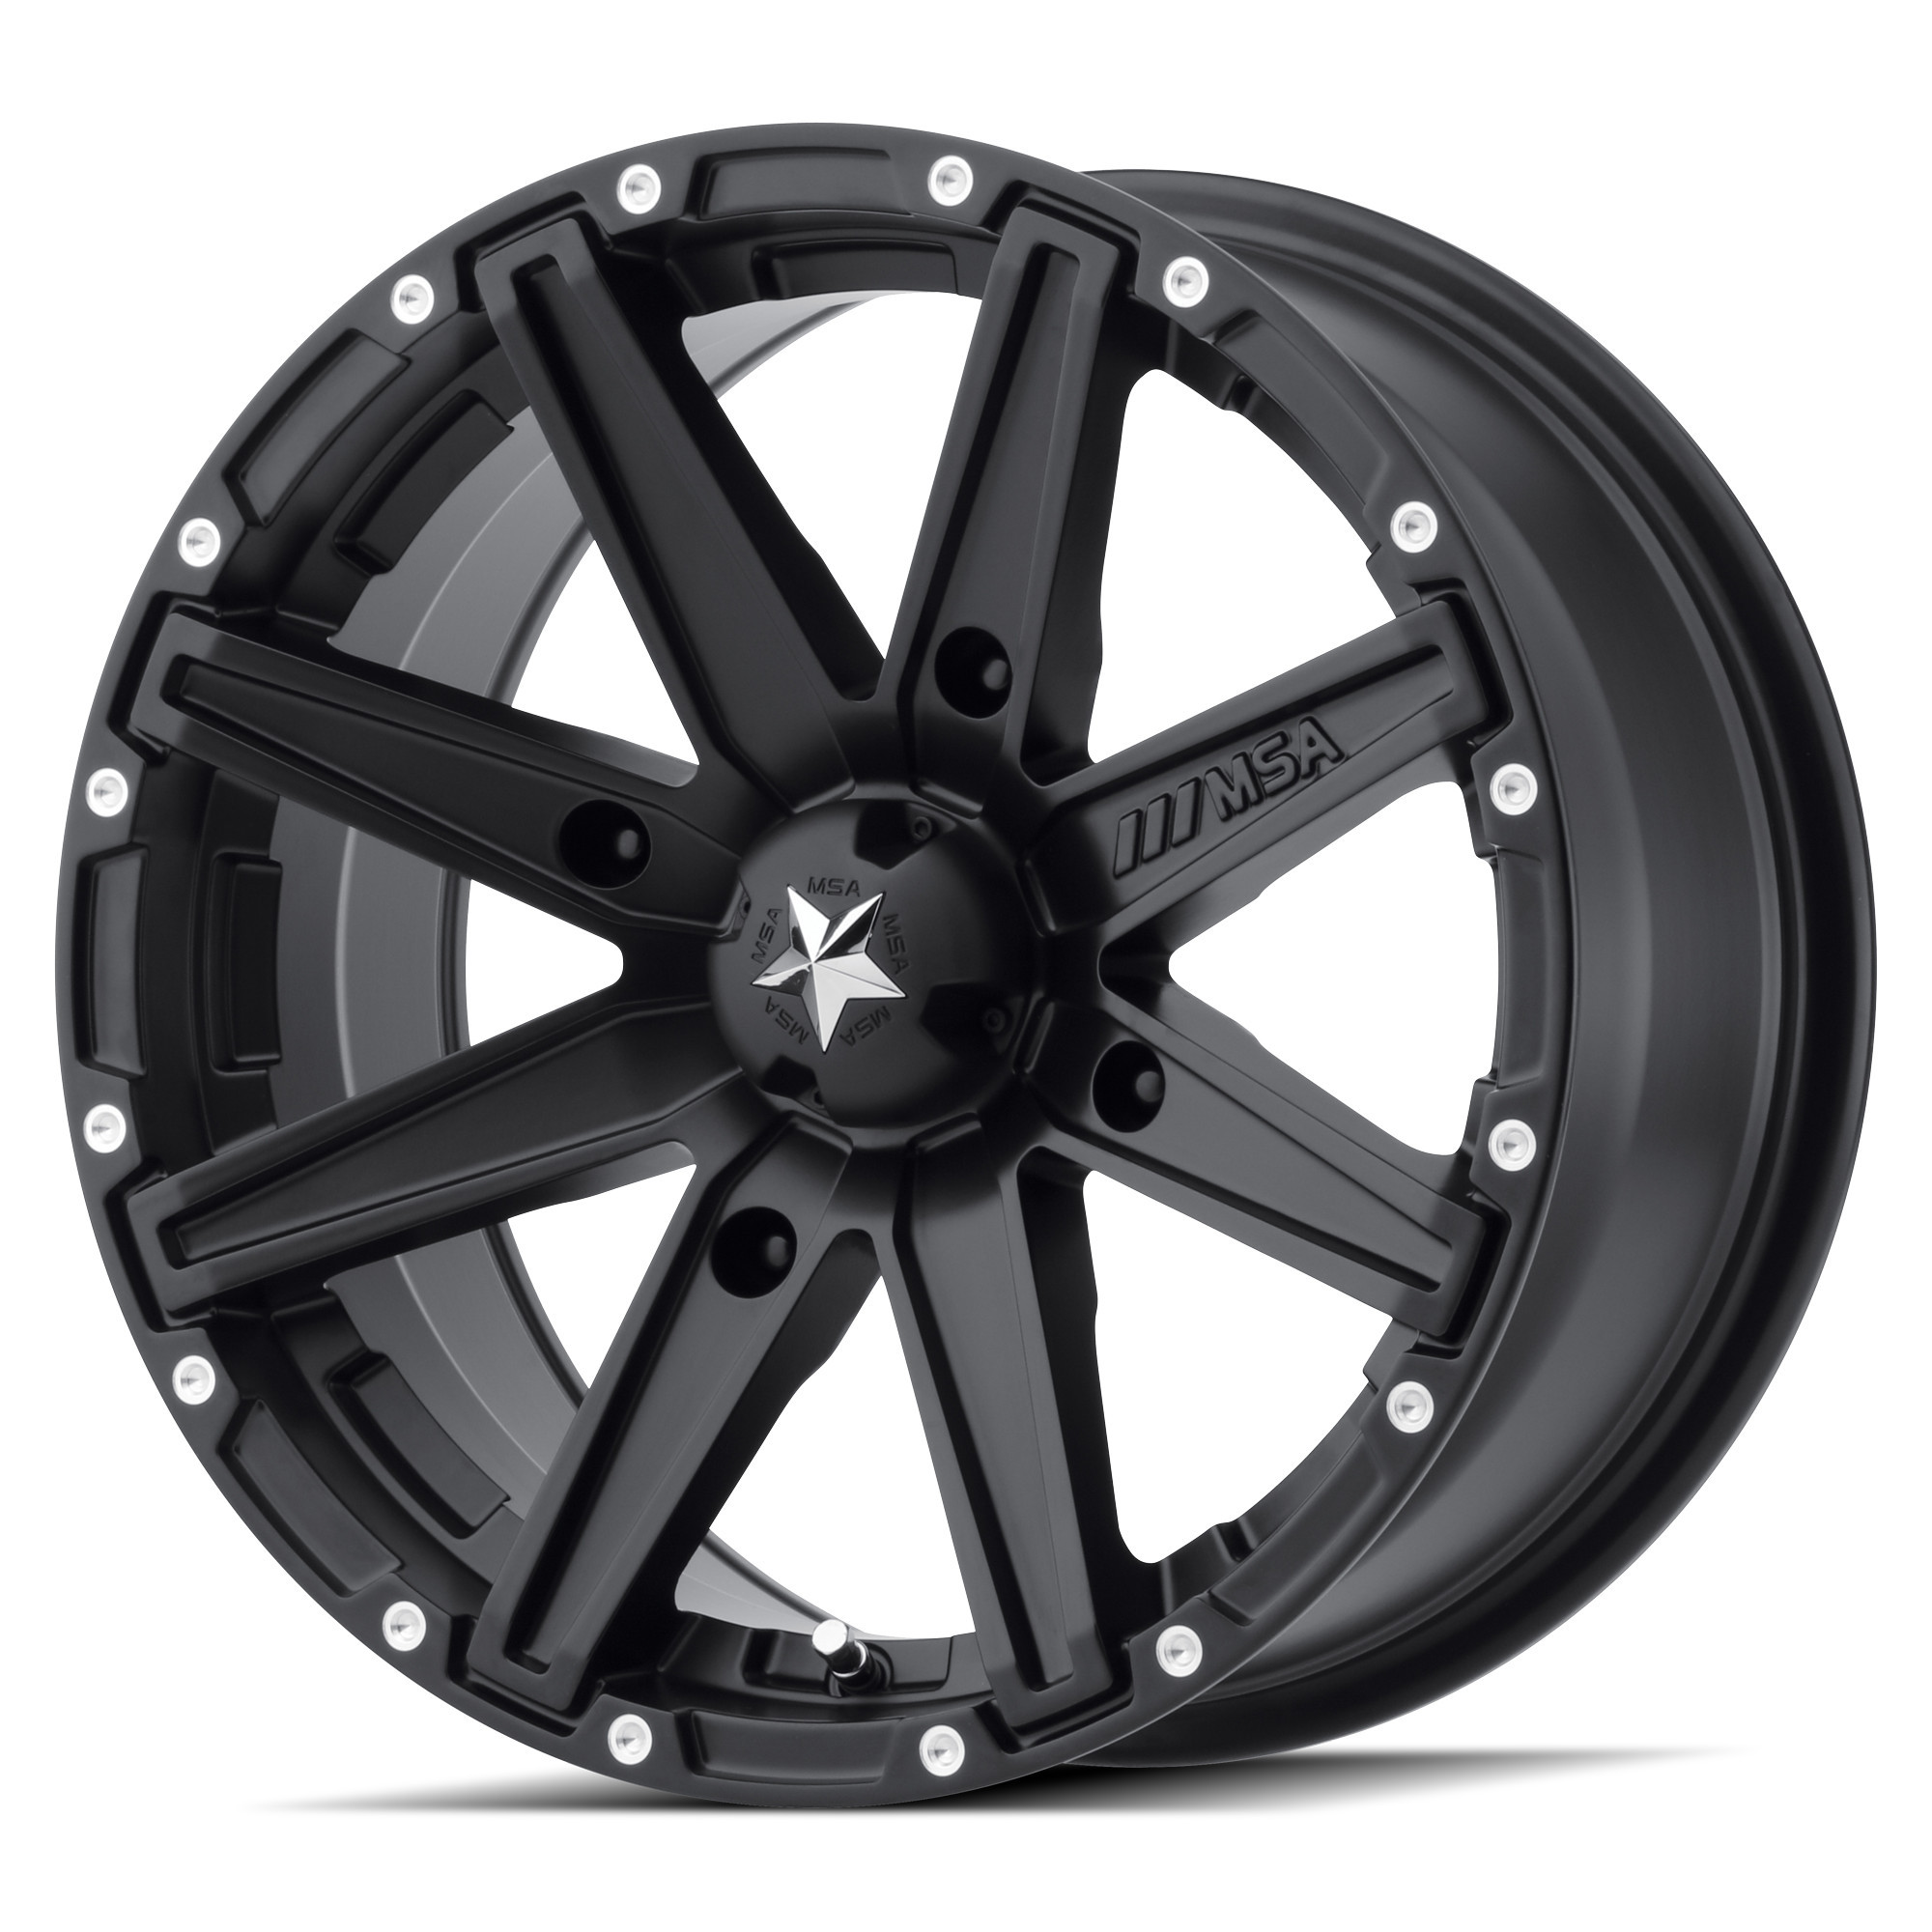 MSA 16x7 4x137 M33 Clutch Satin Black vannesarja Can-Am